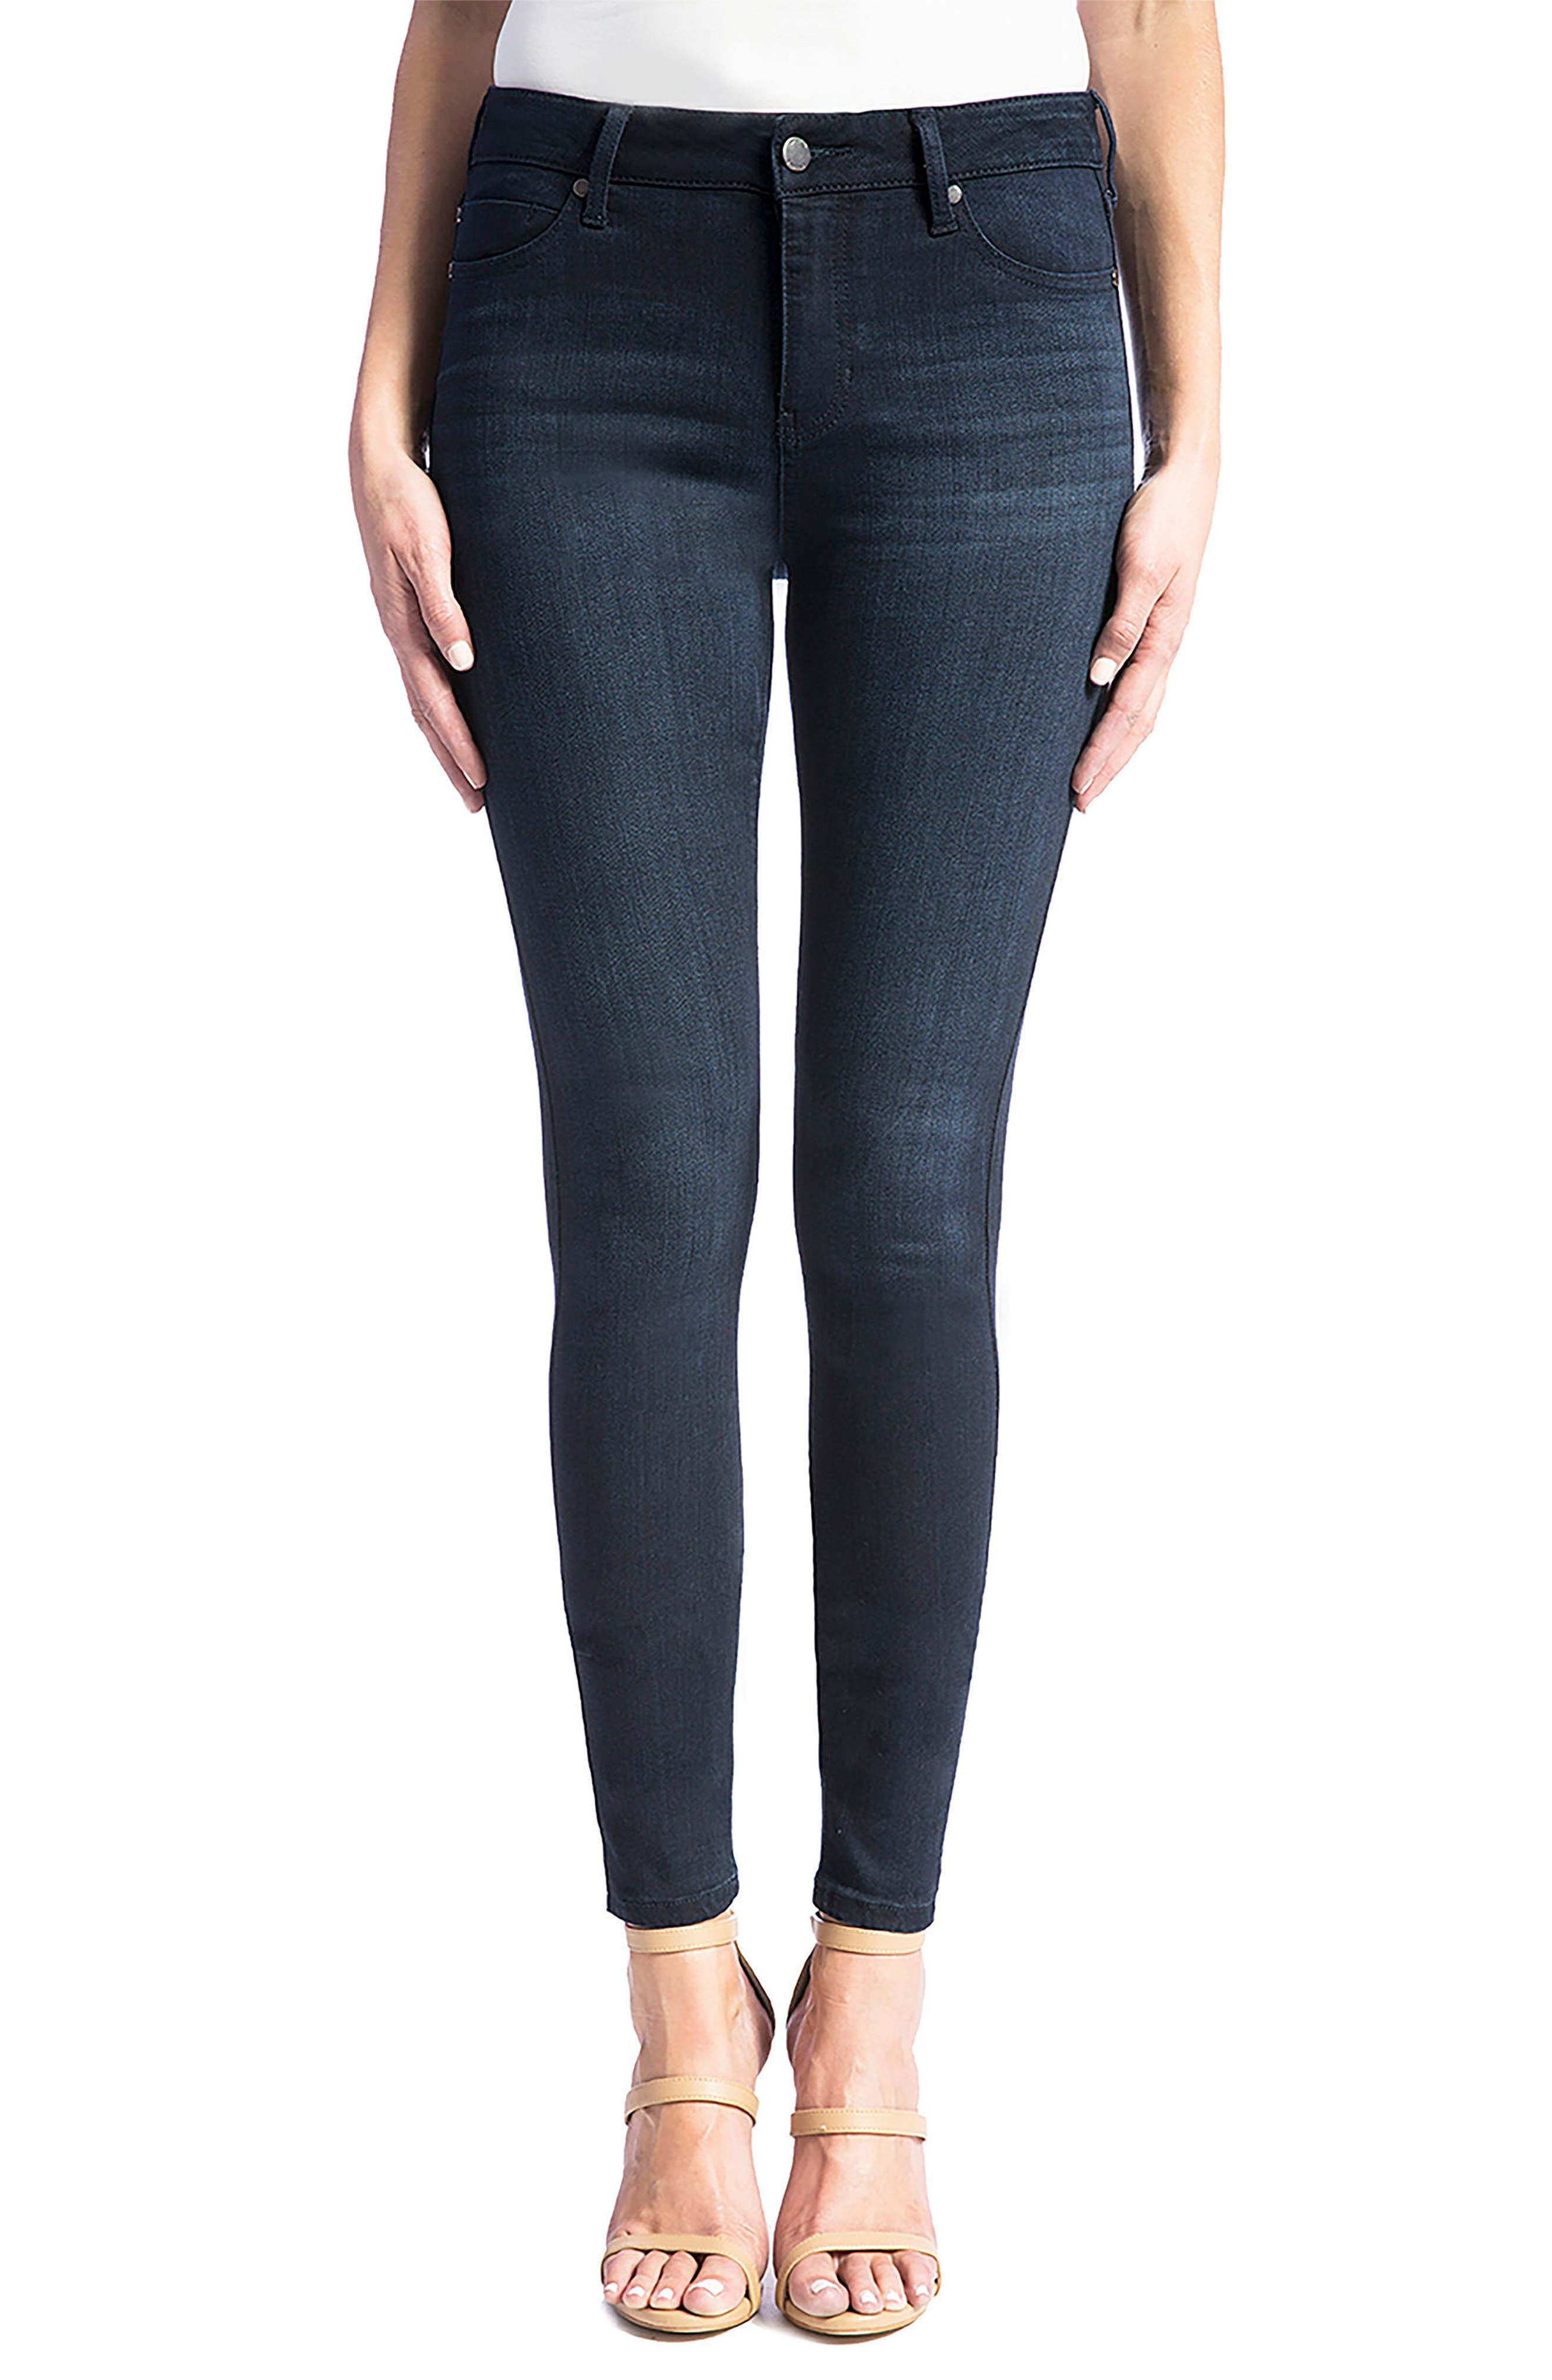 Petite Women's Liverpool Jeans Co. Abby Stretch Skinny Jeans